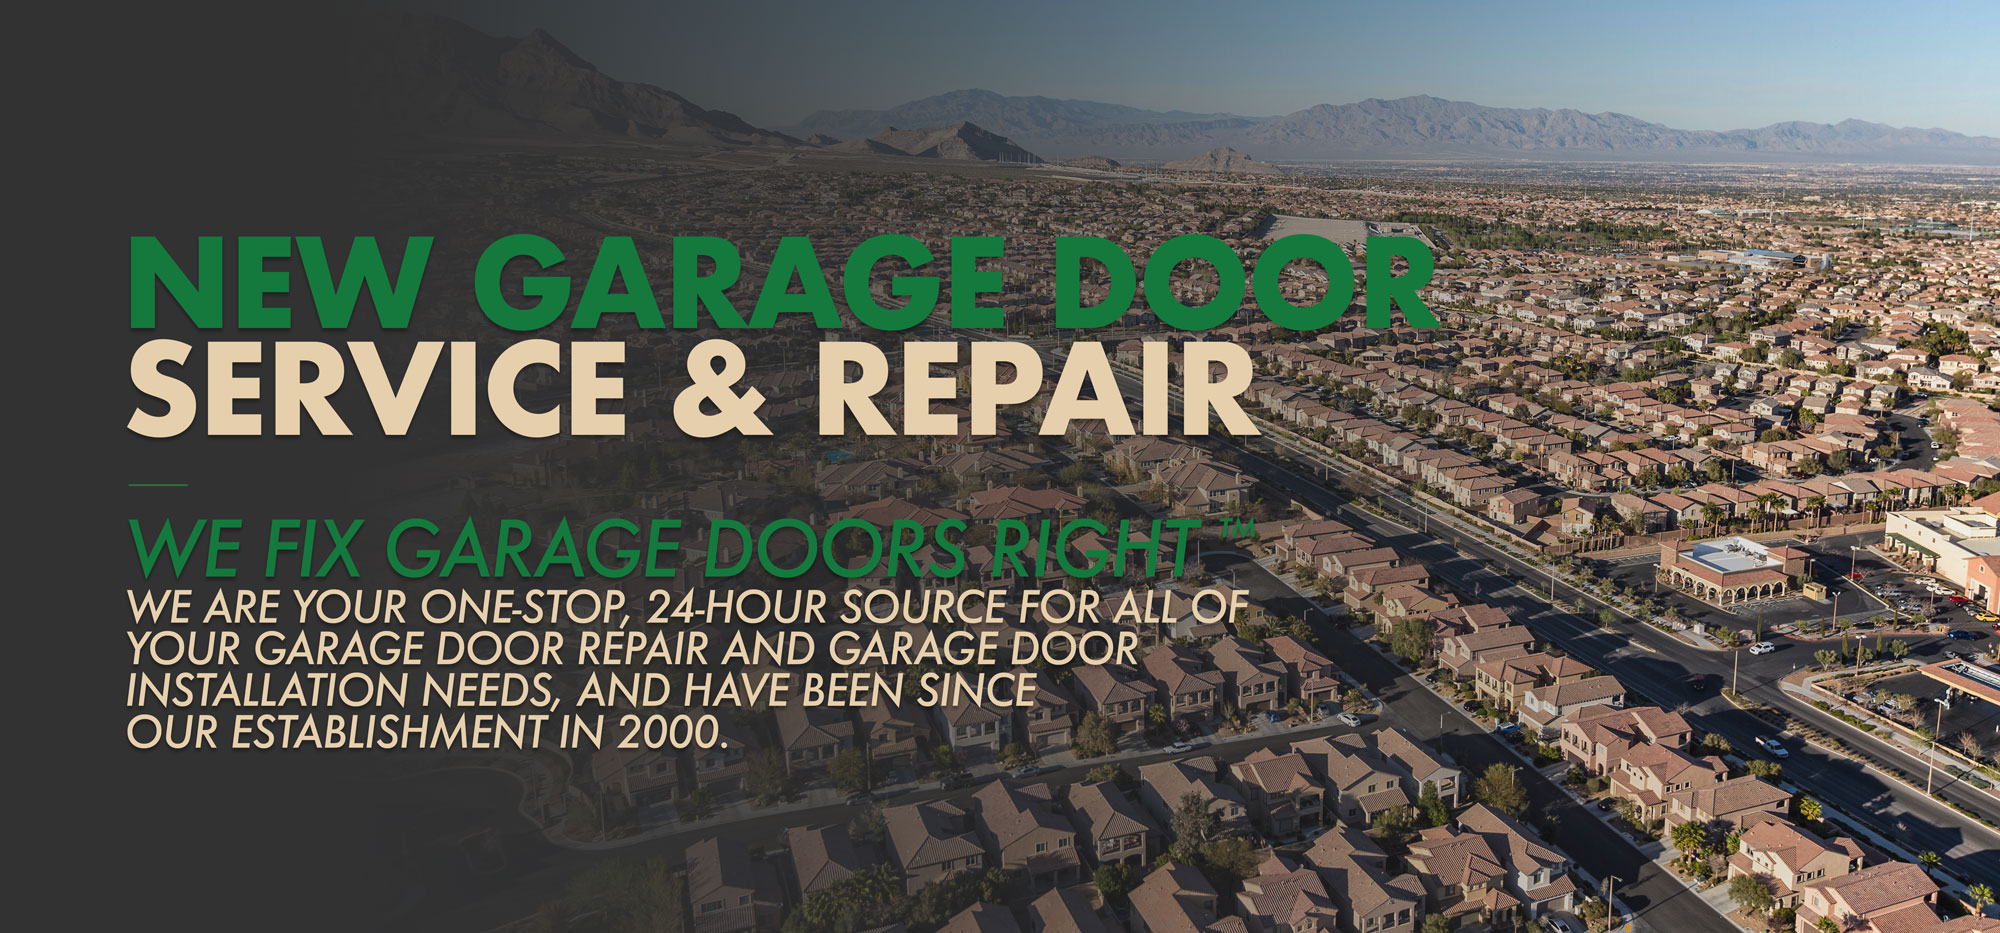 New Garage Door Service & Repair